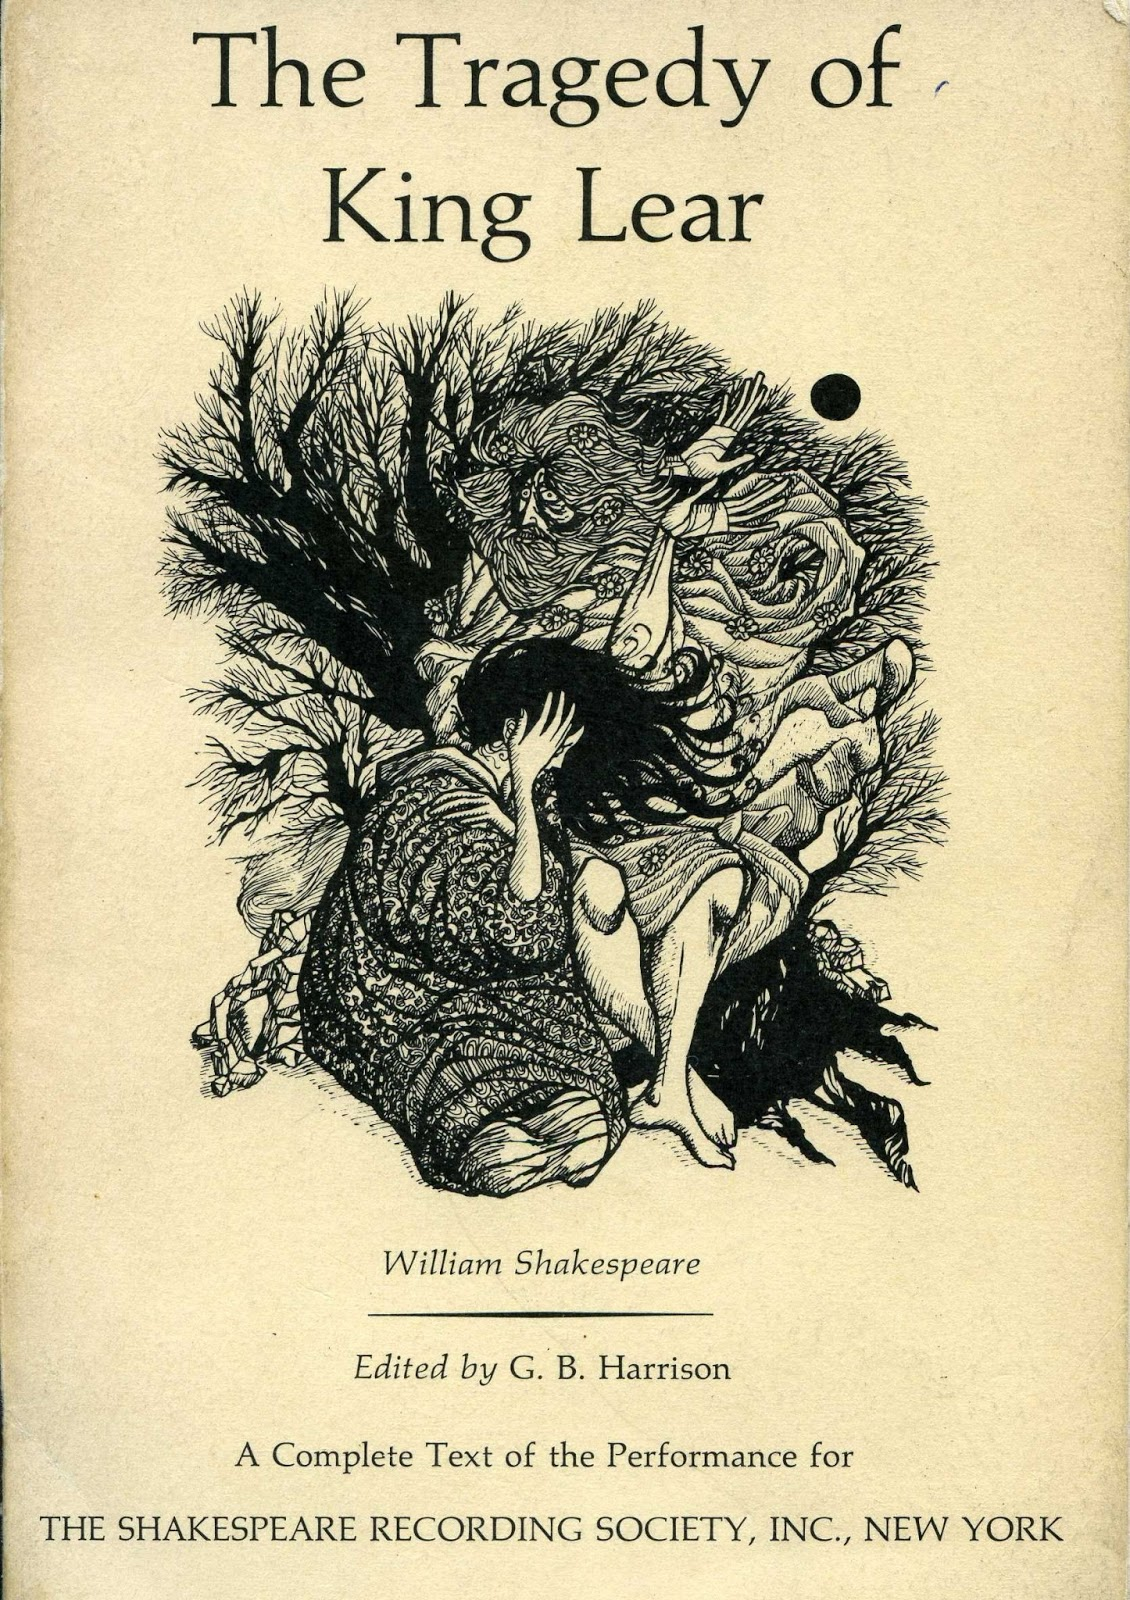 an analysis of the tragic characters in king lear by william shakespeare Shakespeare's king lear / an analysis of all the things king lear learns [ send me this essay] in 5 pages, the author analyses all the thinks that king lear learns in william shakespeare's king lear.